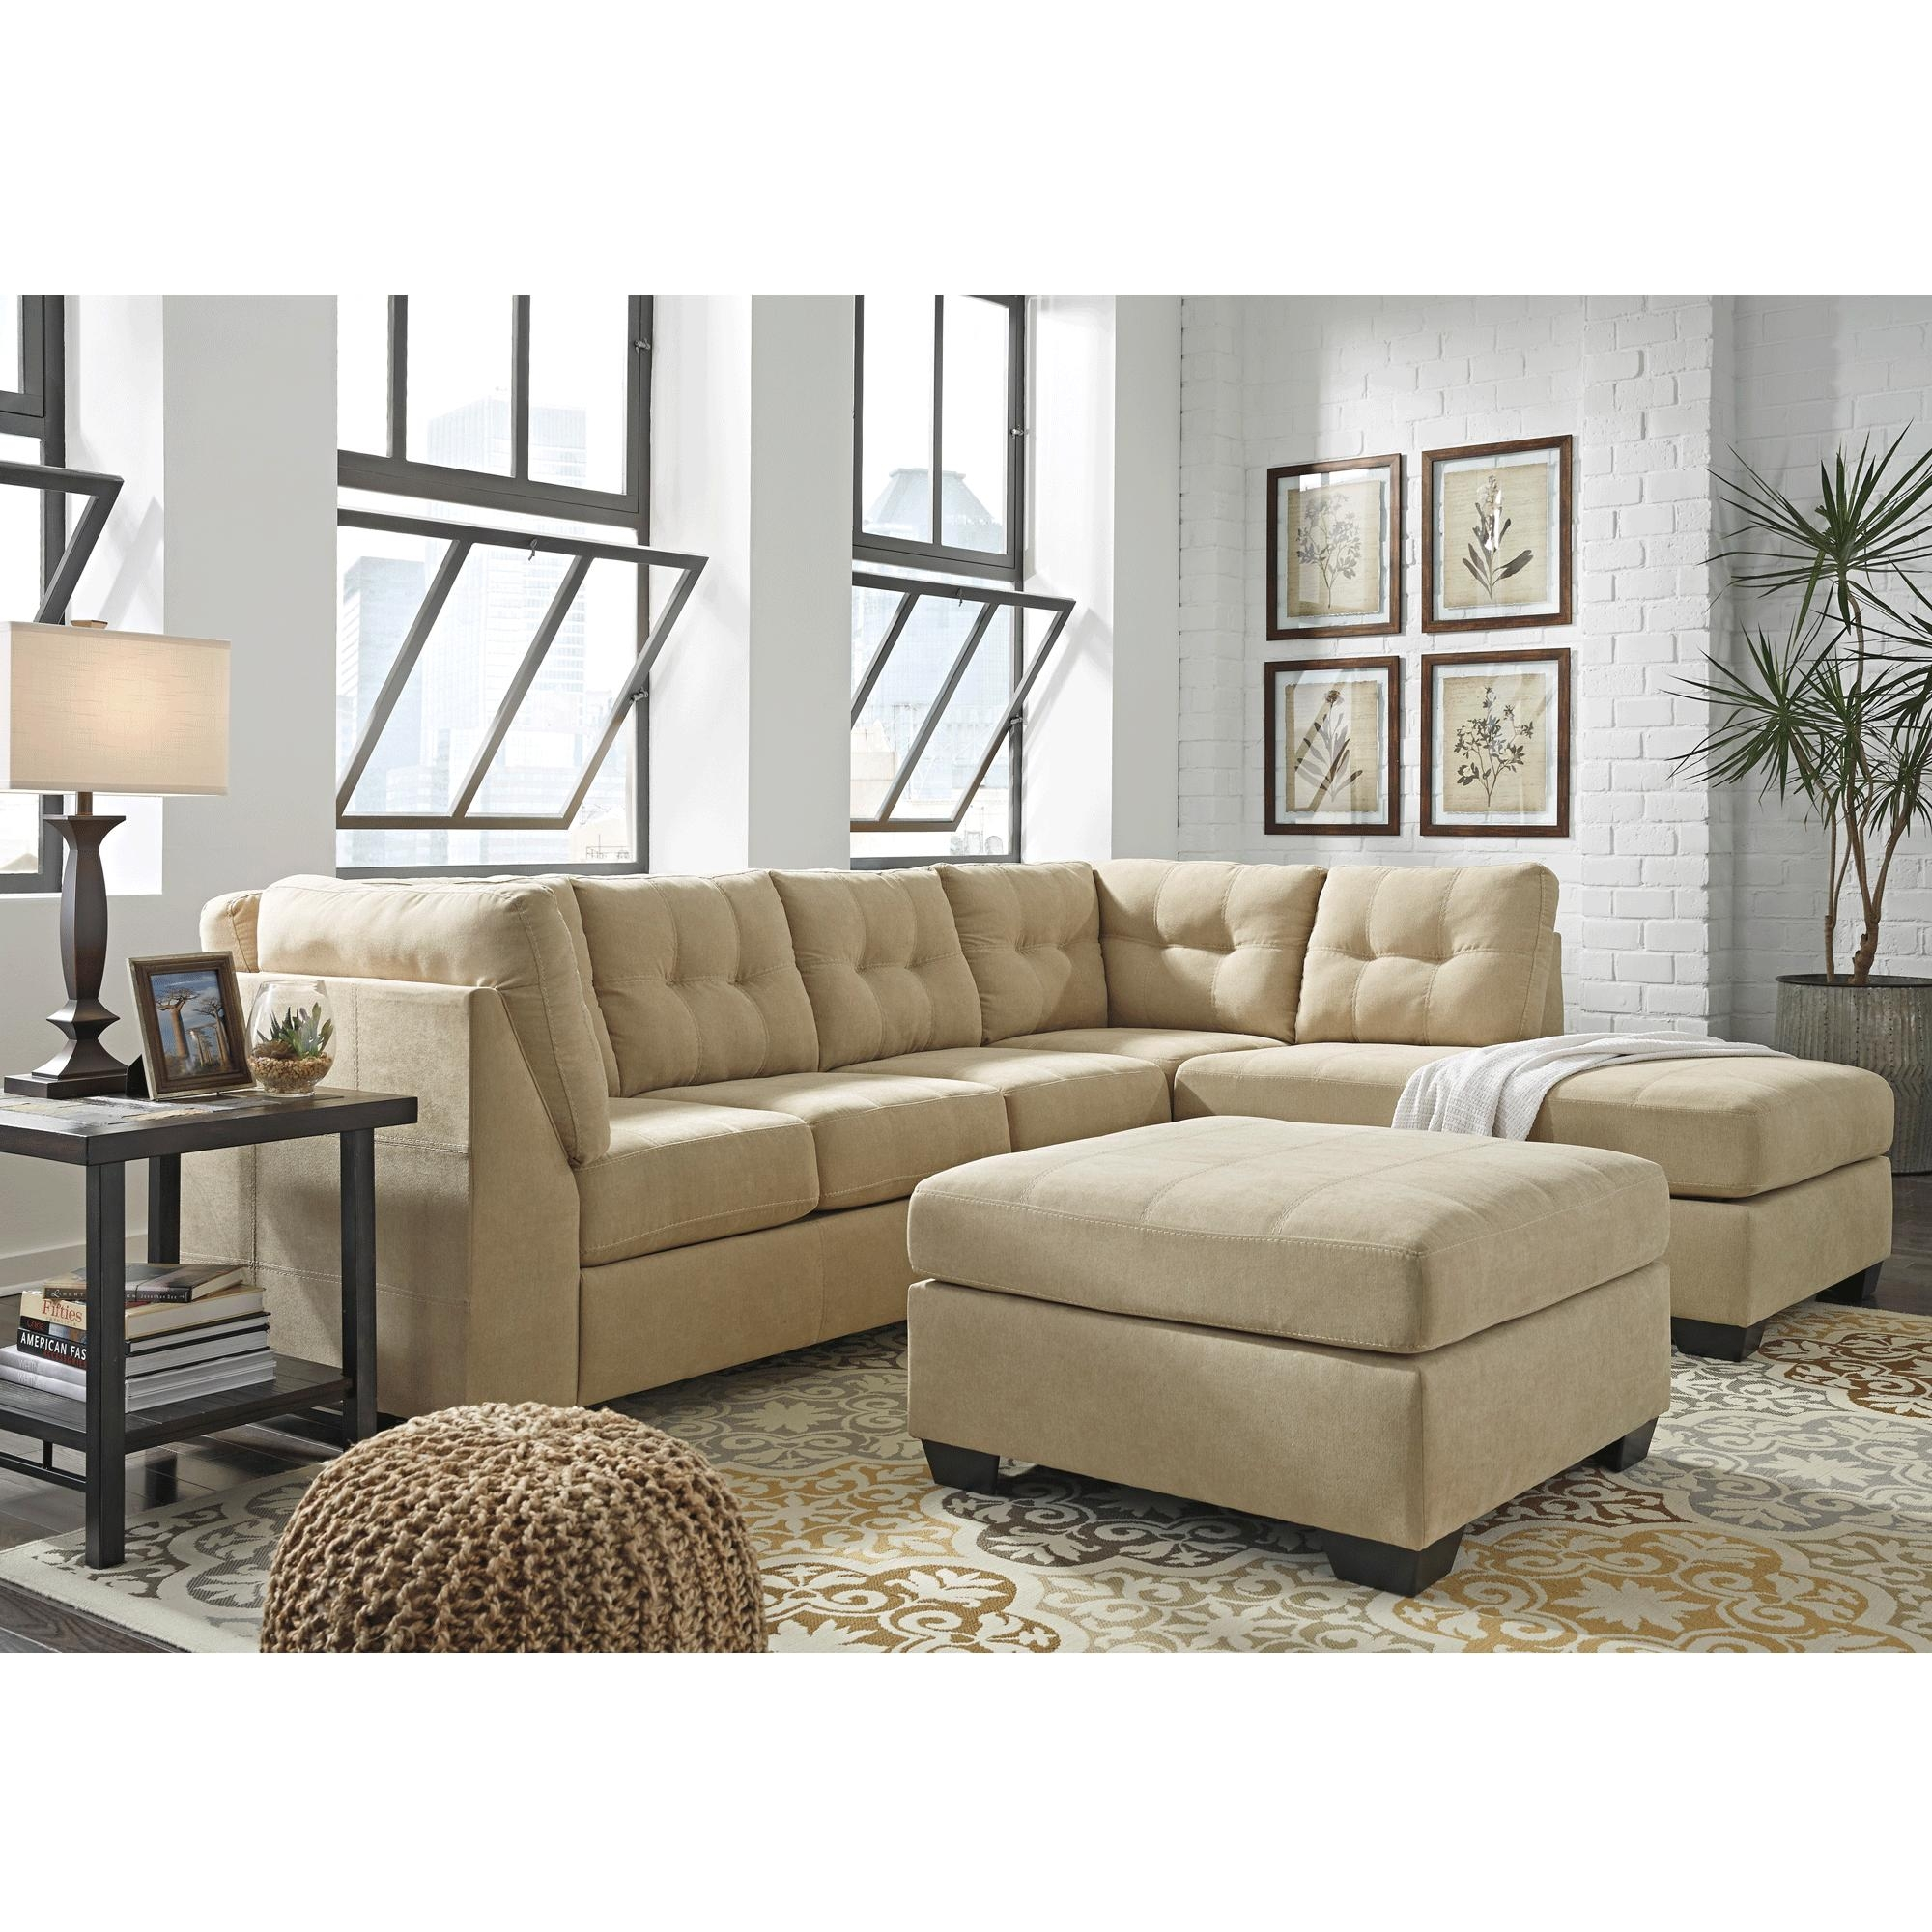 Featured Image of Down Filled Sofa Sectional